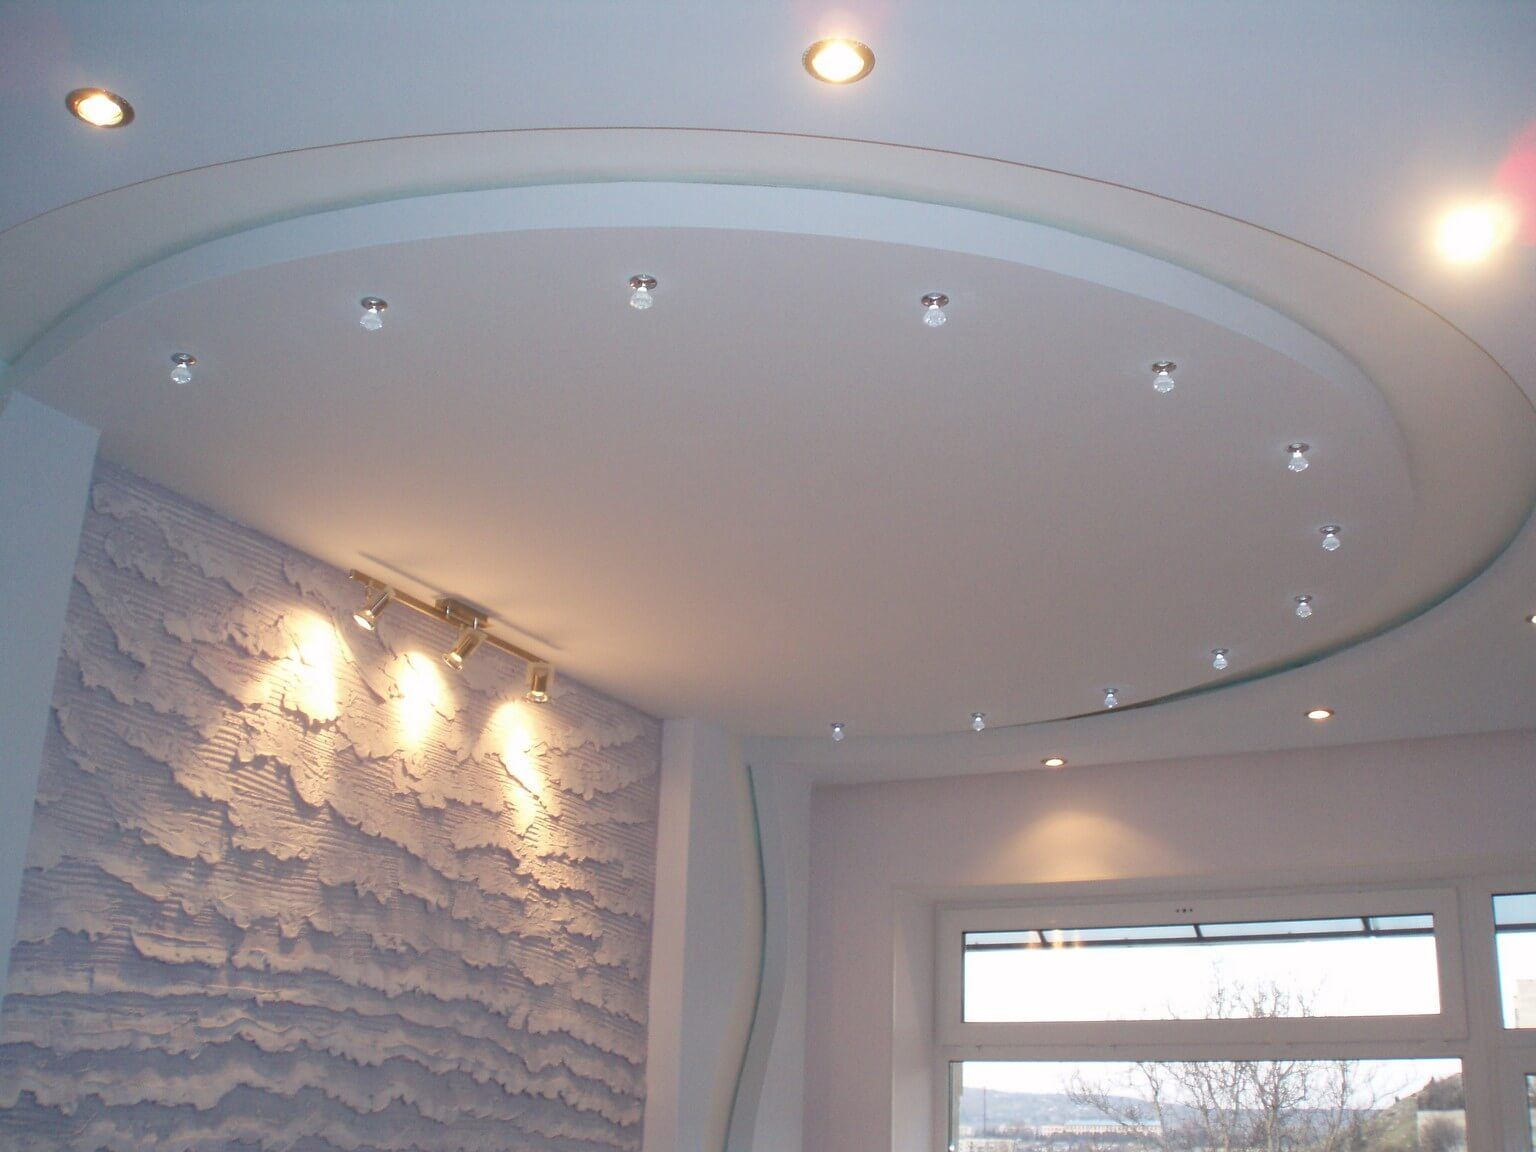 Simple semi-circular design of the plasterboard ceiling and unusal structure of the walls in snow white room